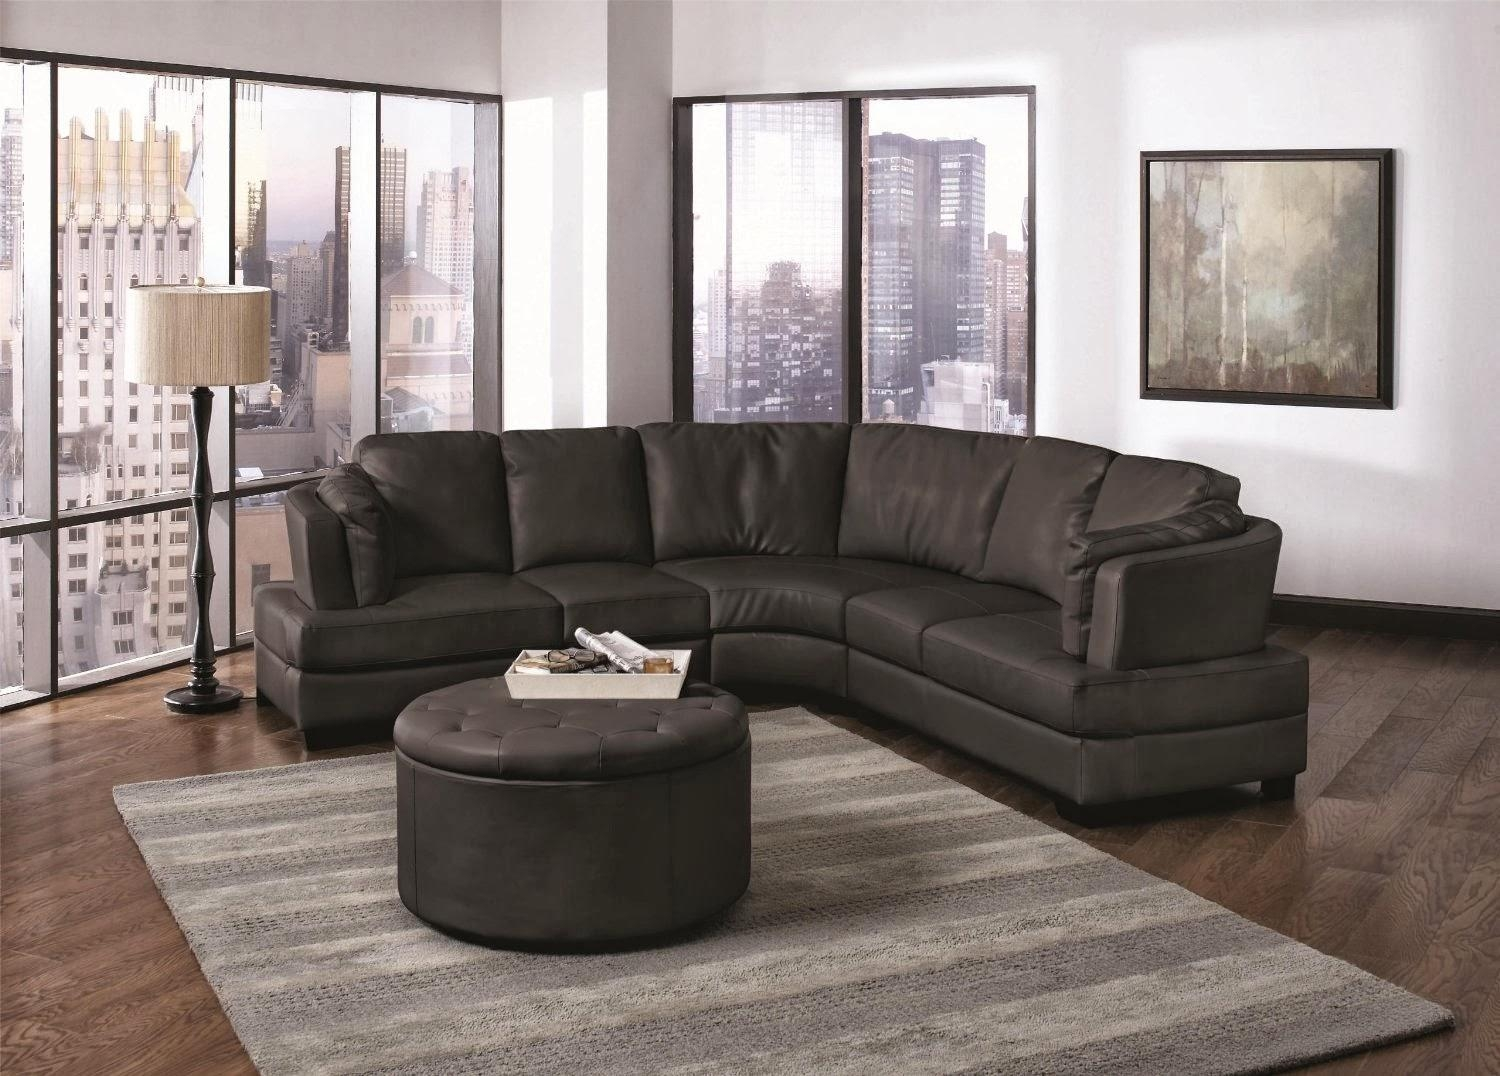 The Elegant Types Curved Sectional Sofa | Lgilab | Modern Inside Circular Sectional Sofa (Image 15 of 15)